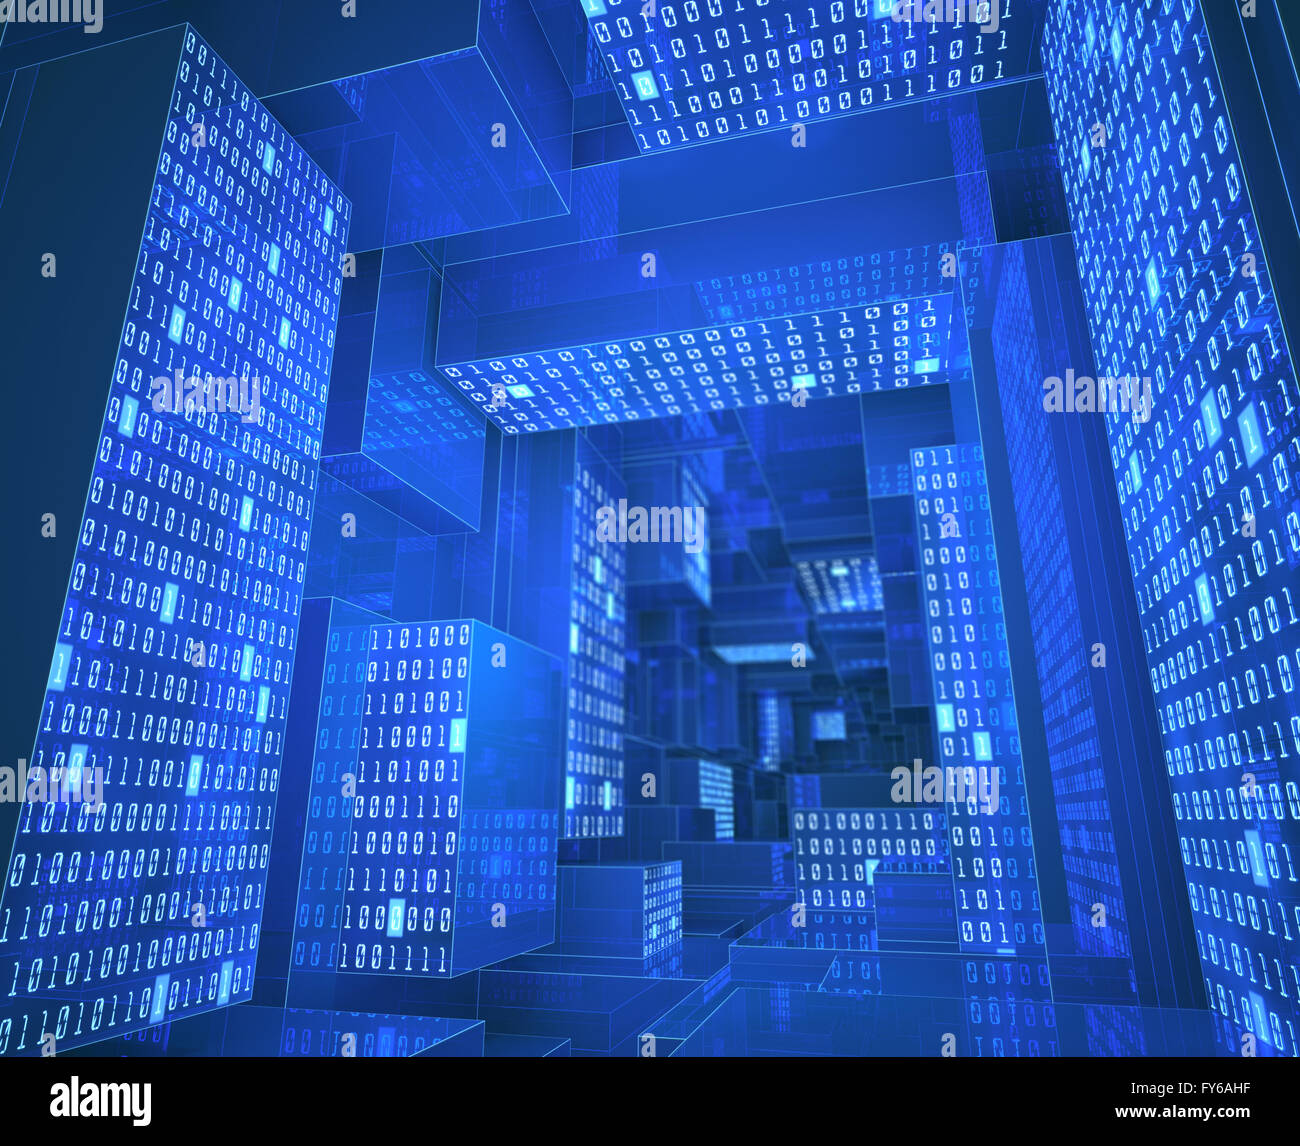 Tunnel composed by zeros and ones in a concept of cloud computing, data storage and processing. Stock Photo